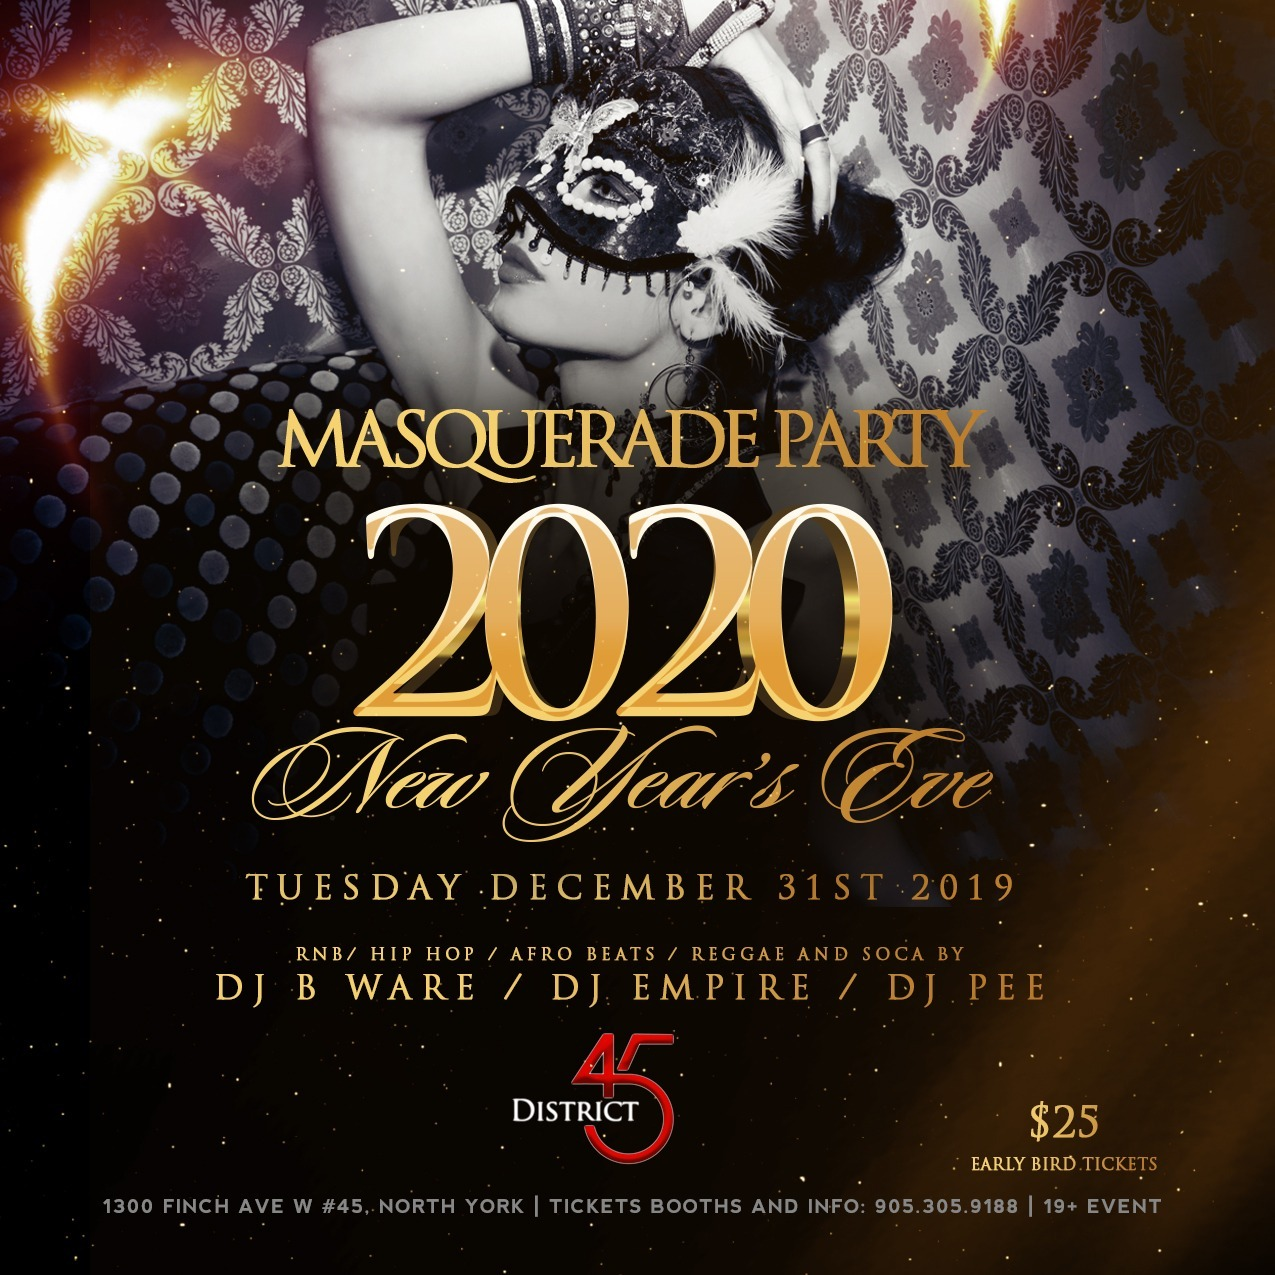 MASQUERADE PARTY 2020 New Year's Eve